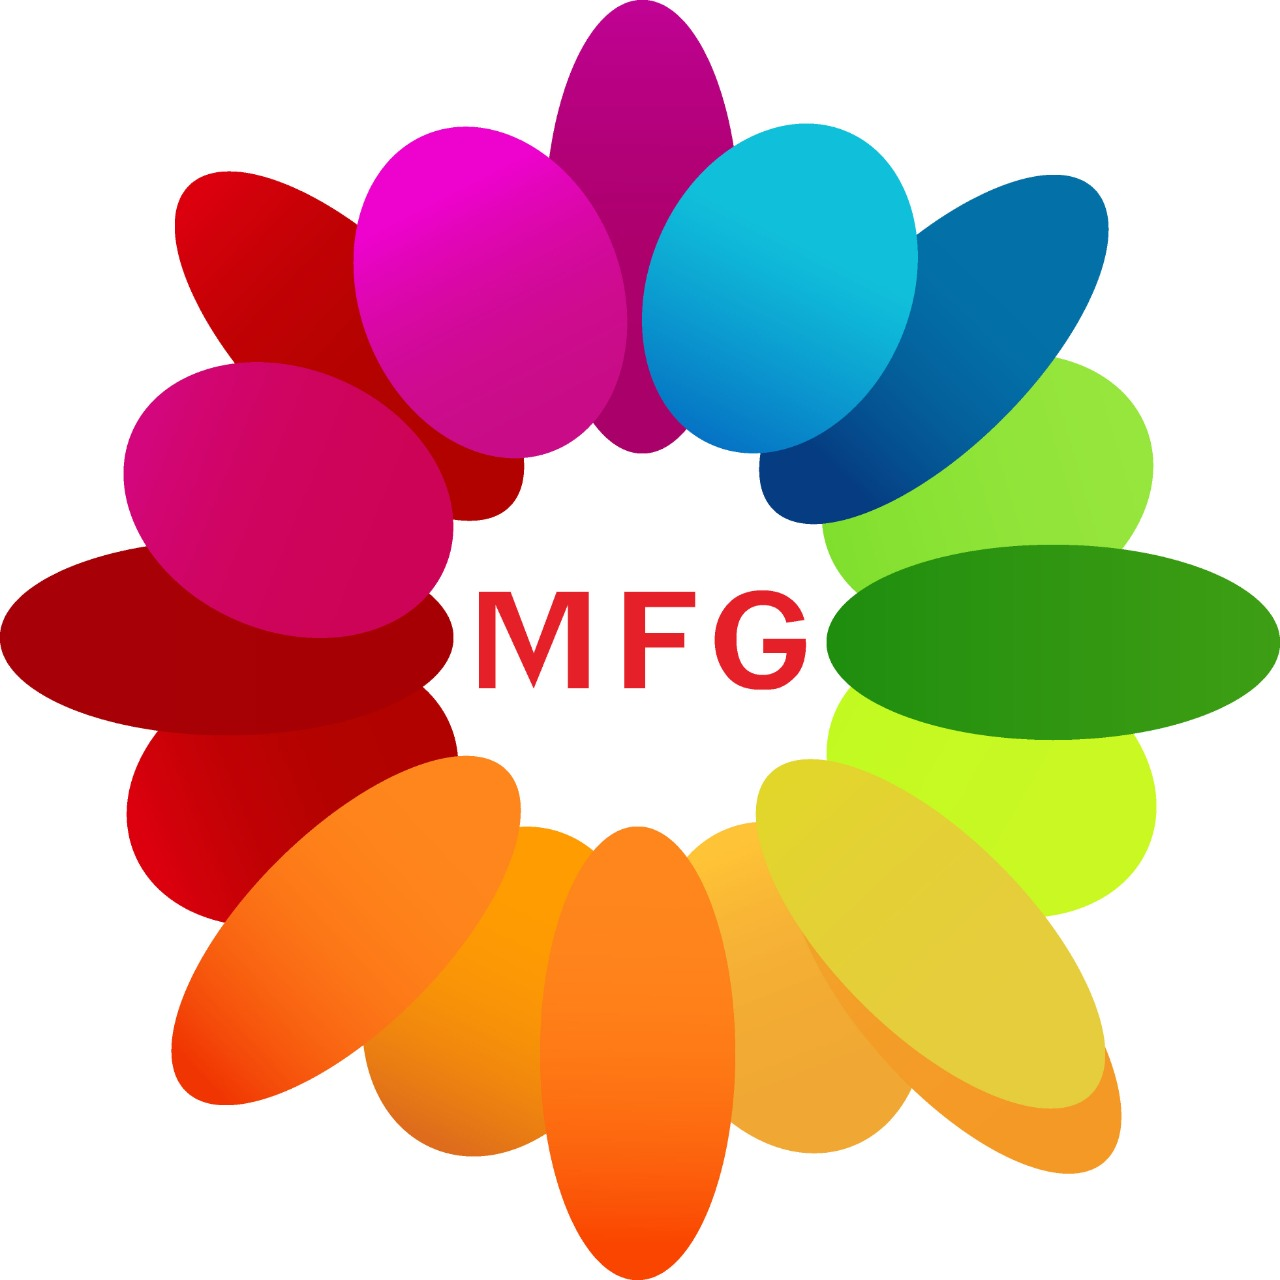 1 kg ButterScotch(Eggless) fresh cream premium qualtiy cake